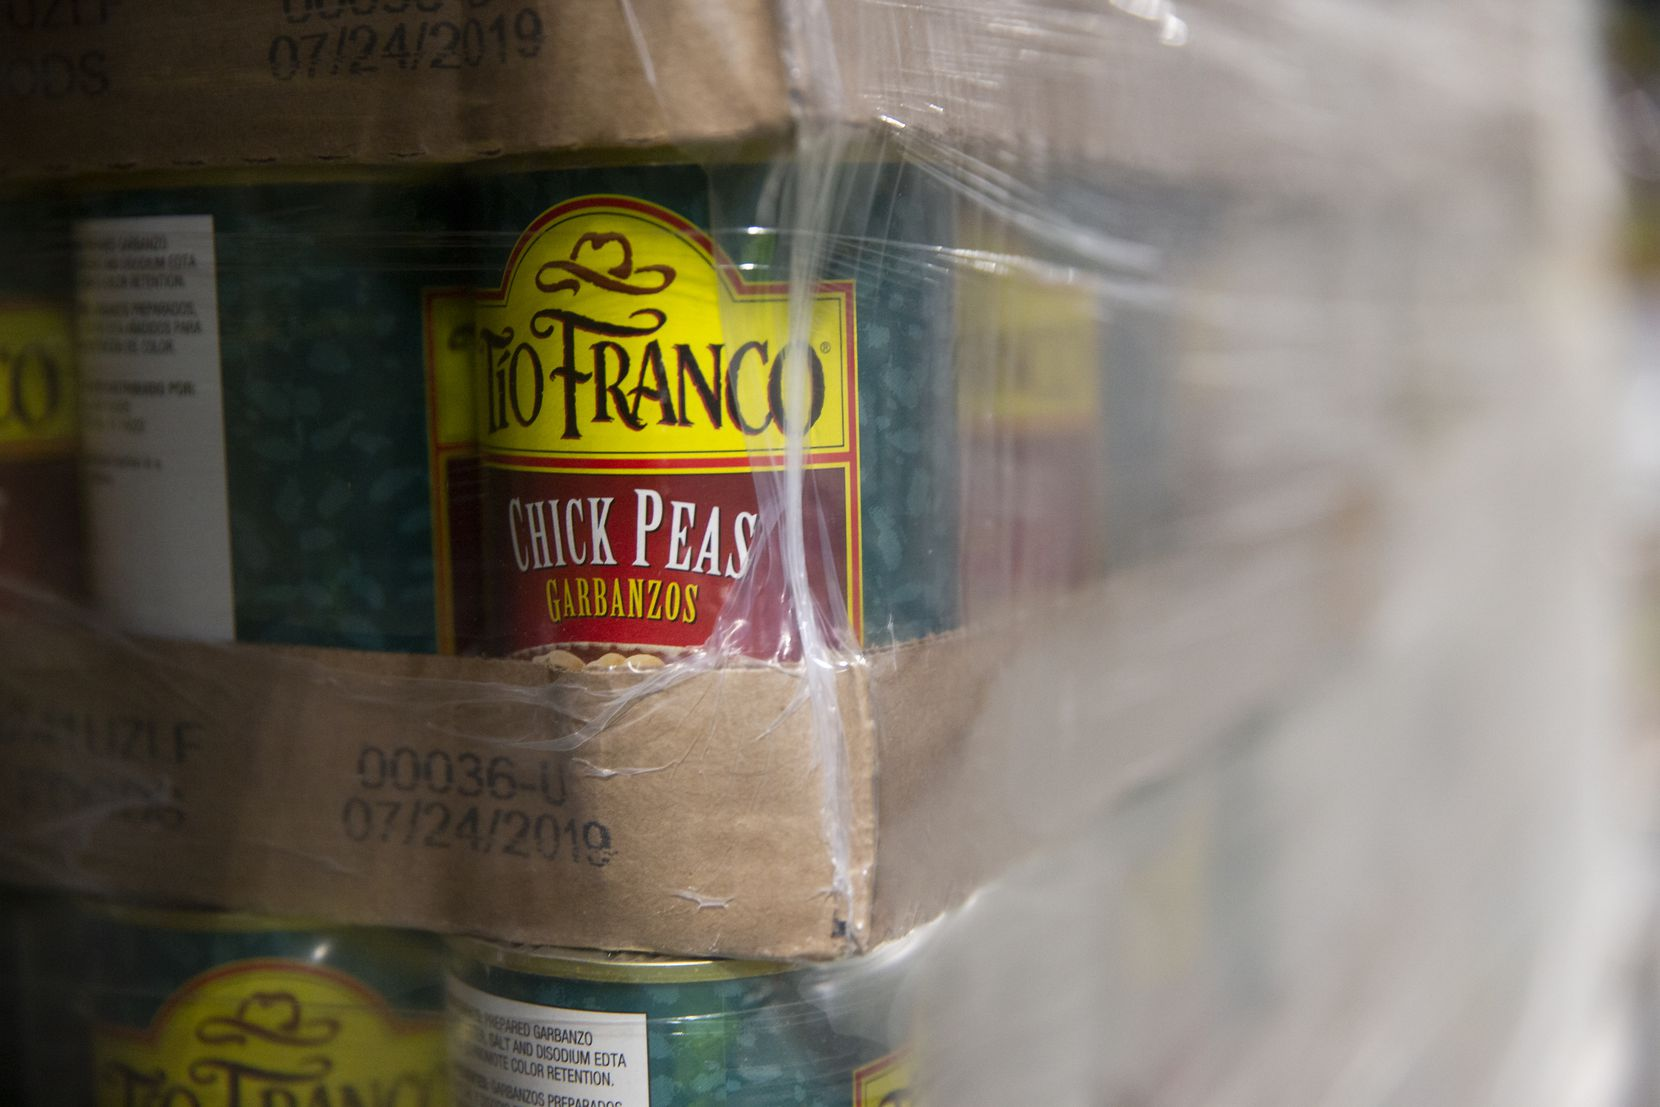 A pallet of chick peas, or garbanzo beans, supplied by the USDA at the North Texas Food Bank on Feb. 6, 2020 in Plano.